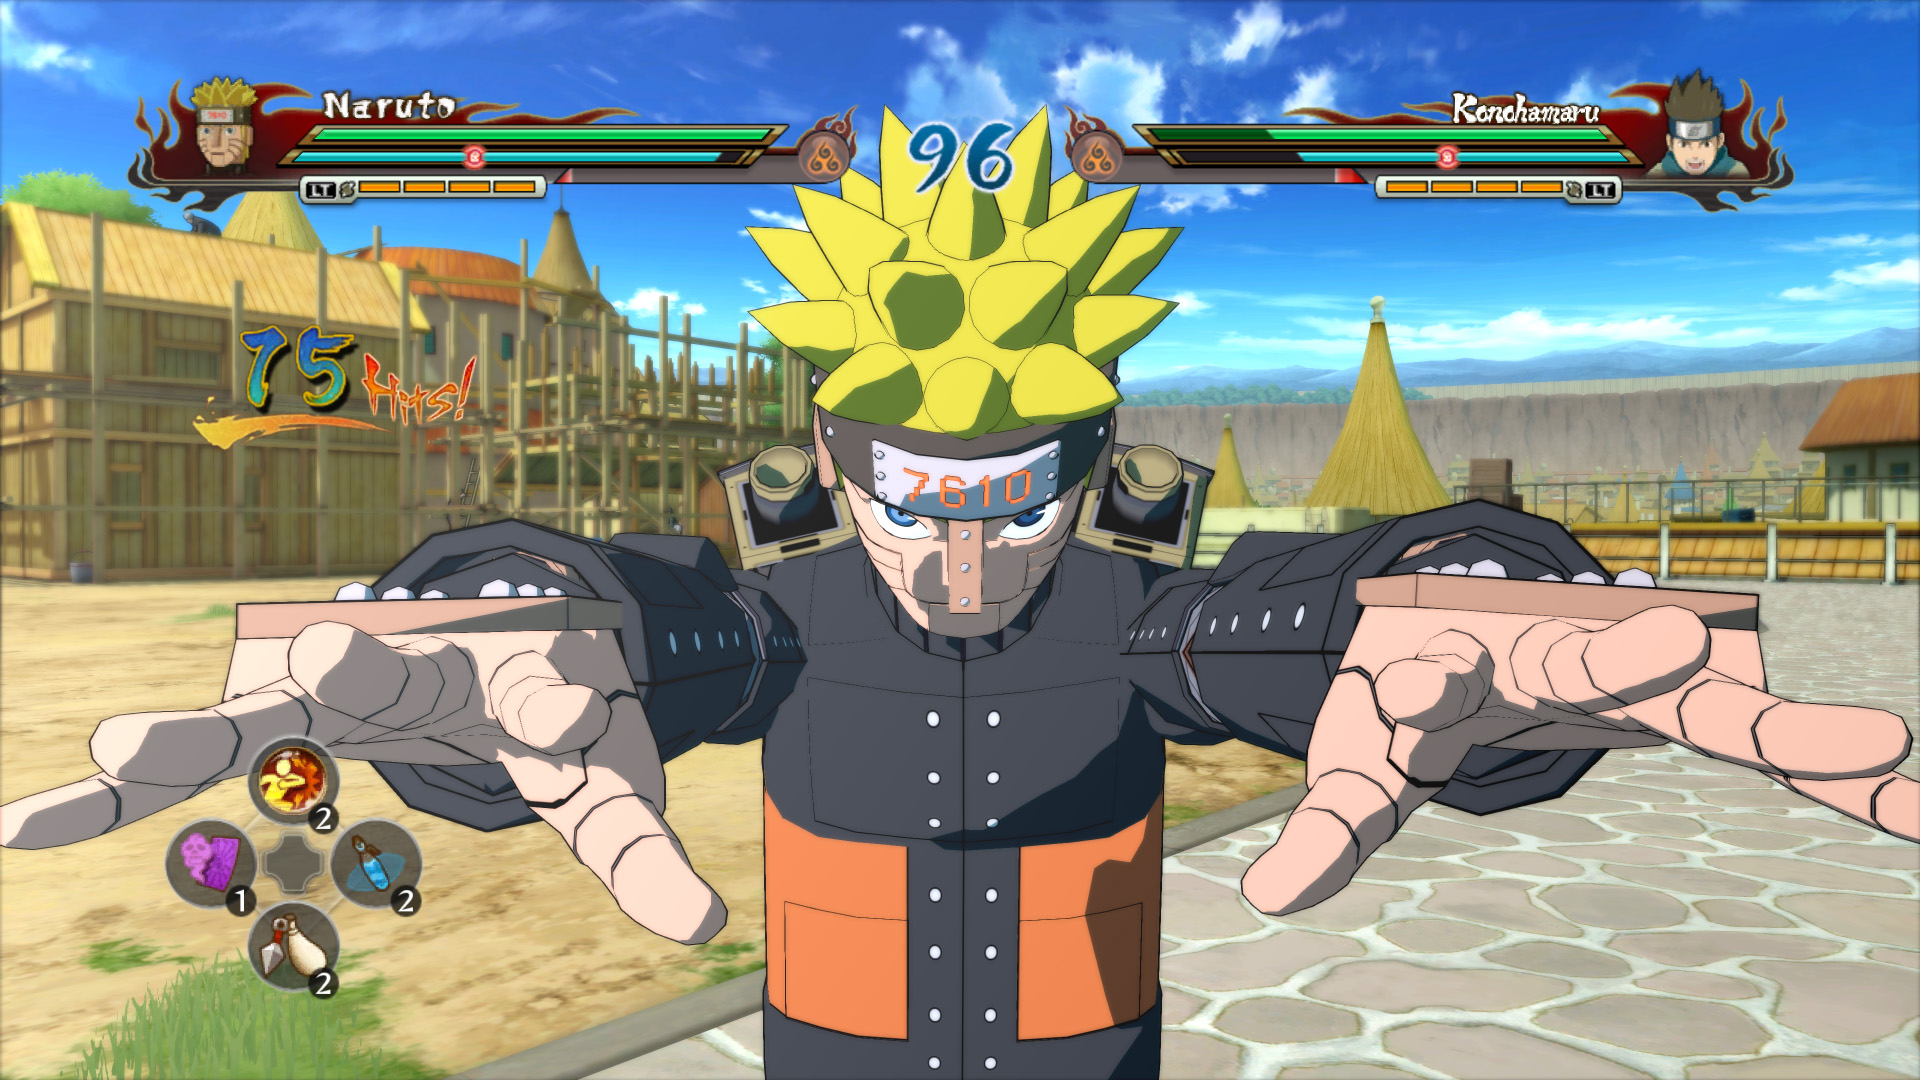 Narutominator is well-armed.